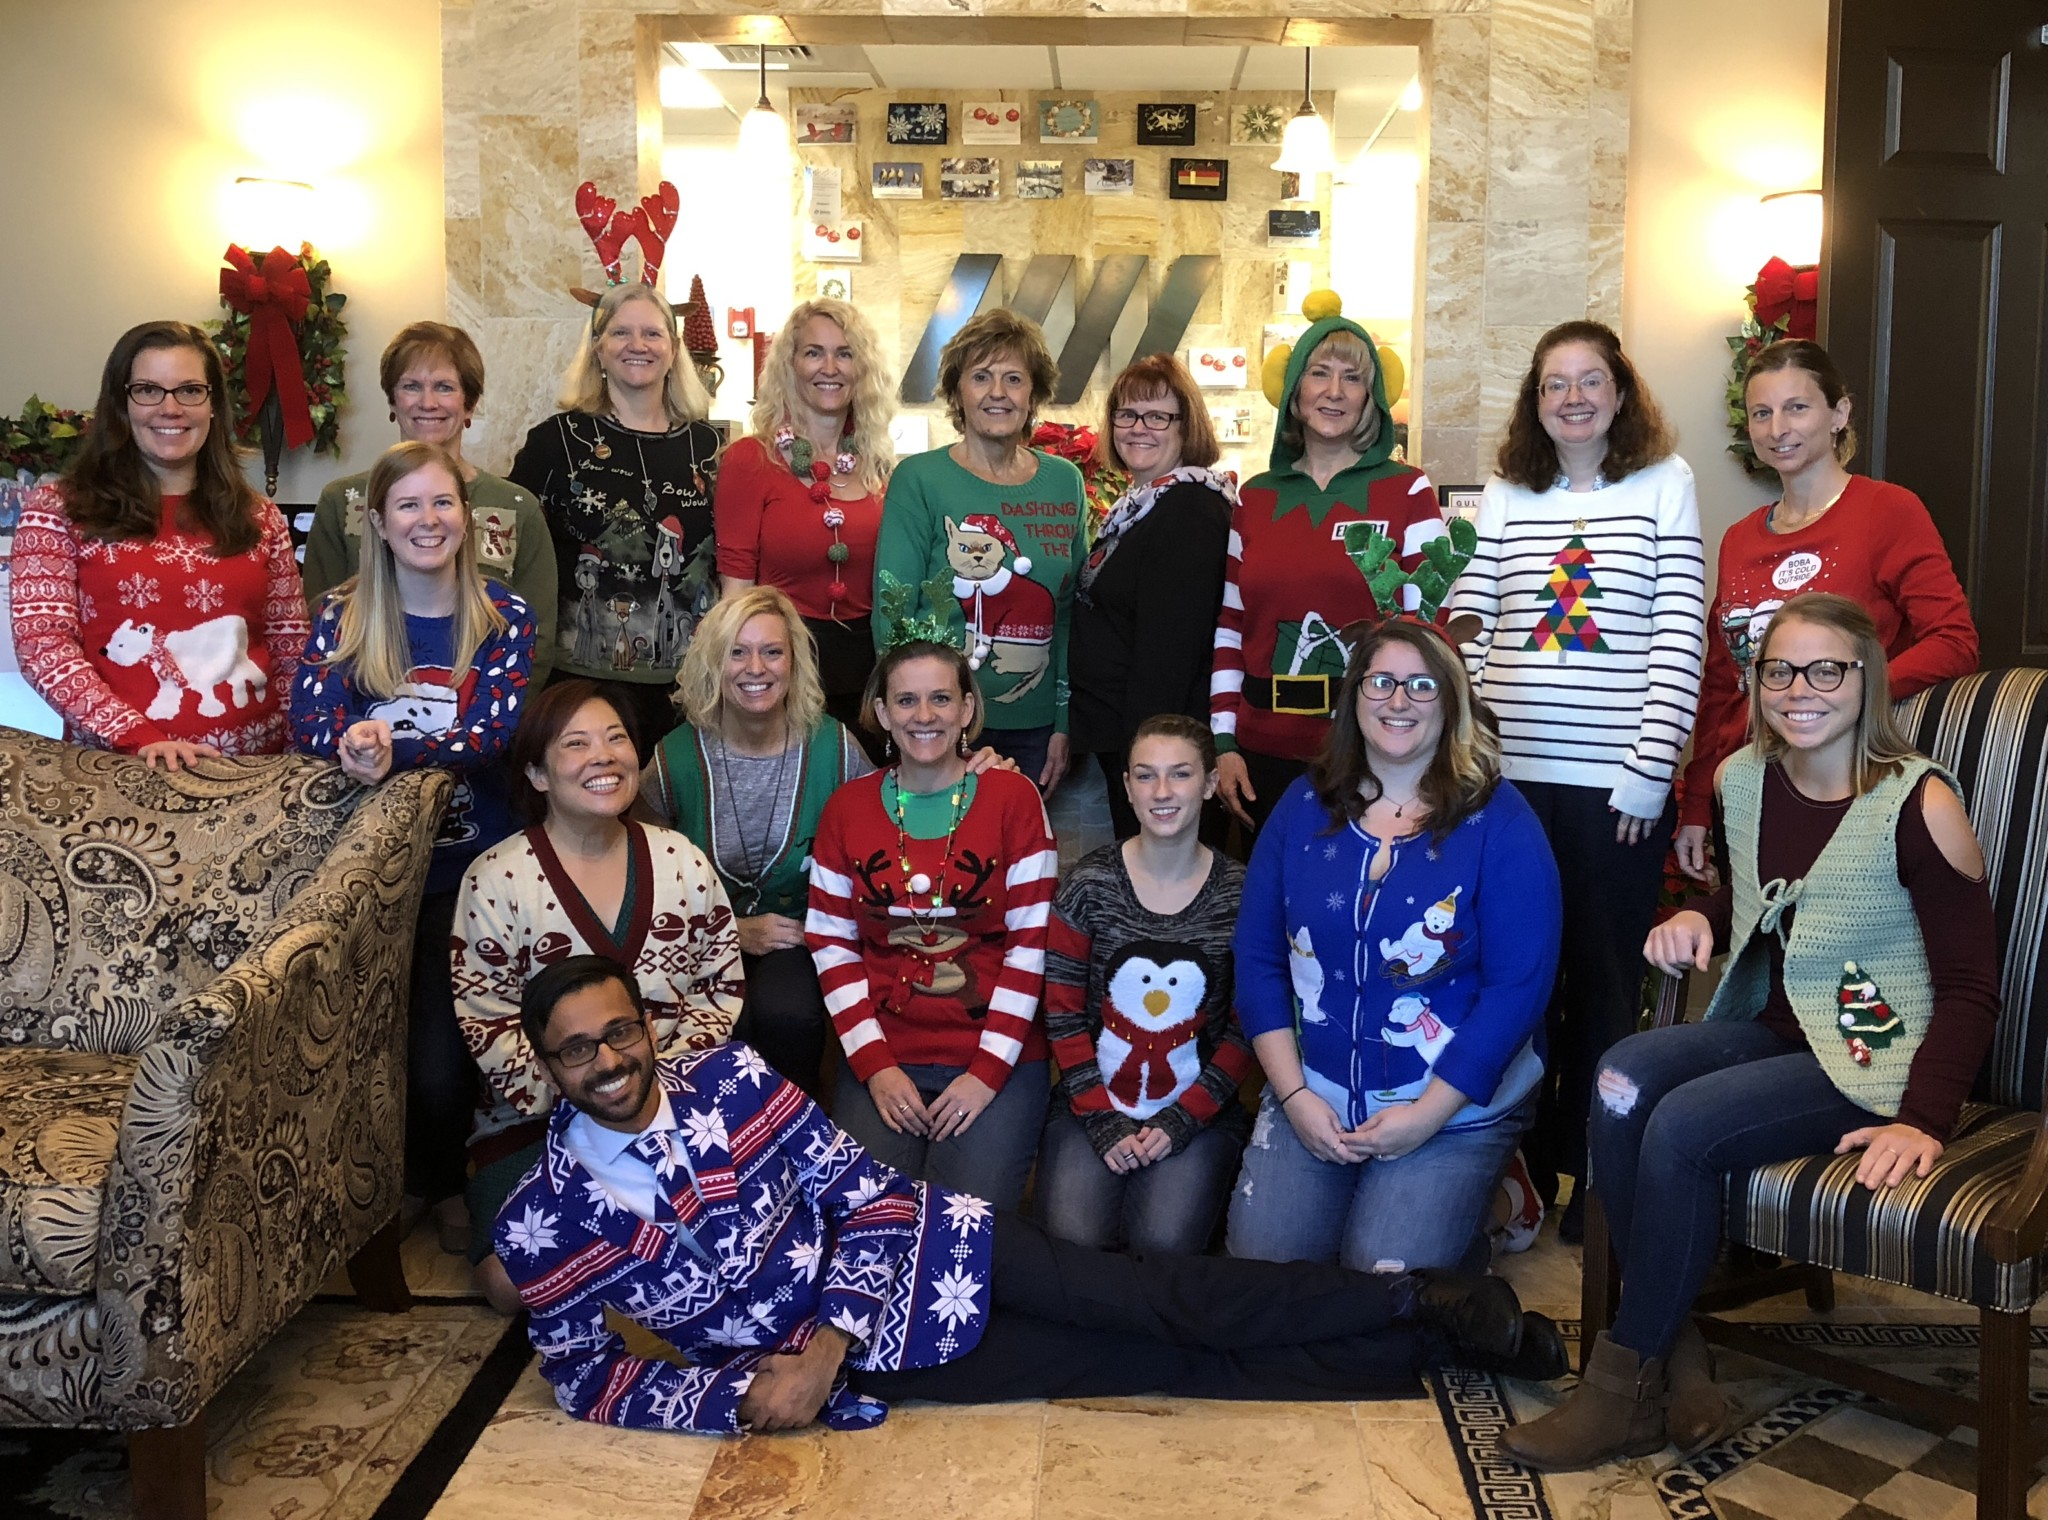 MNMW Christmas Sweater Contest